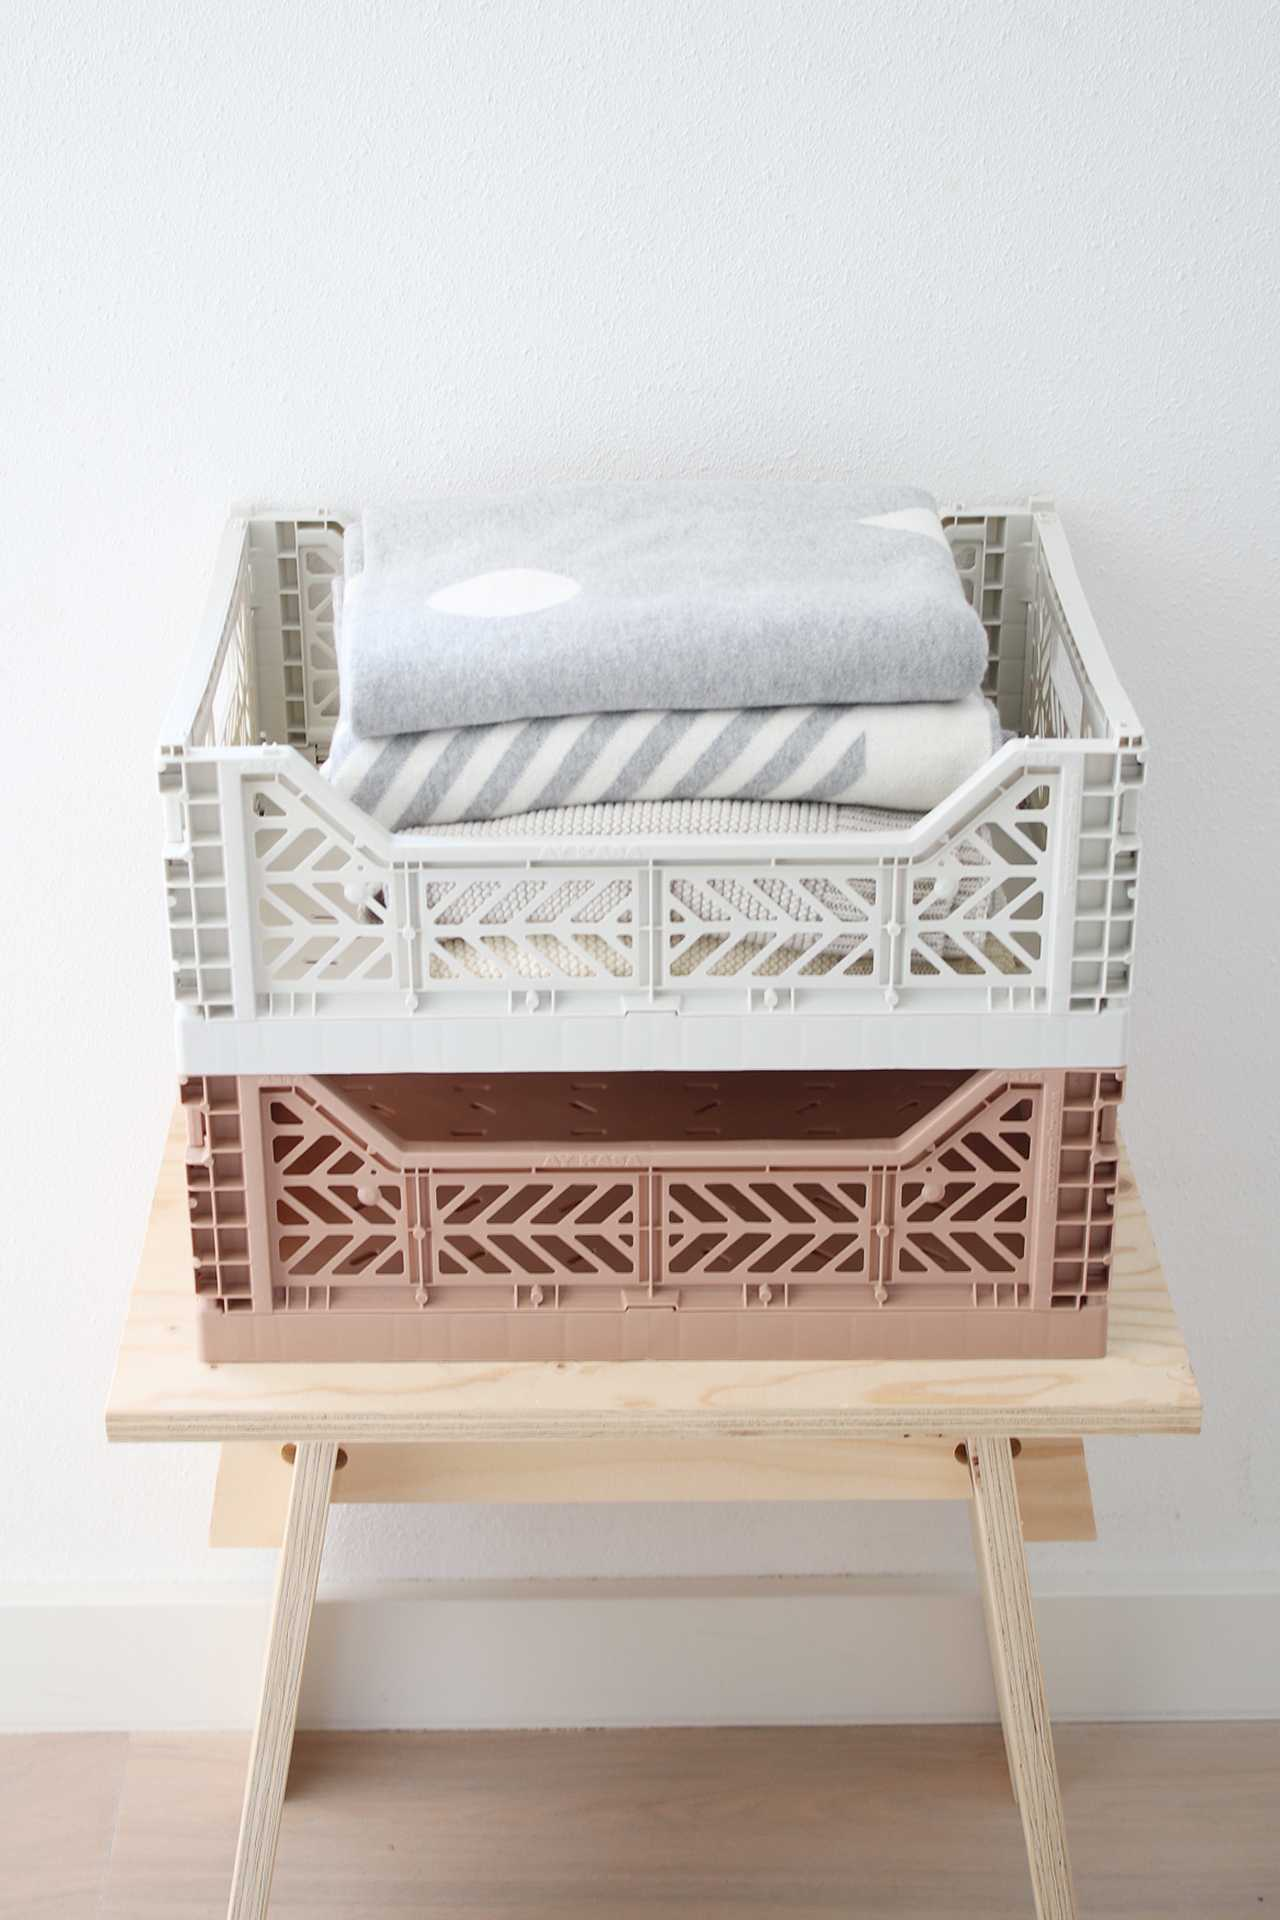 Folding Crate: Midi Stackable Storage Crate - Milk Tea Folding Crates - Bon Tot